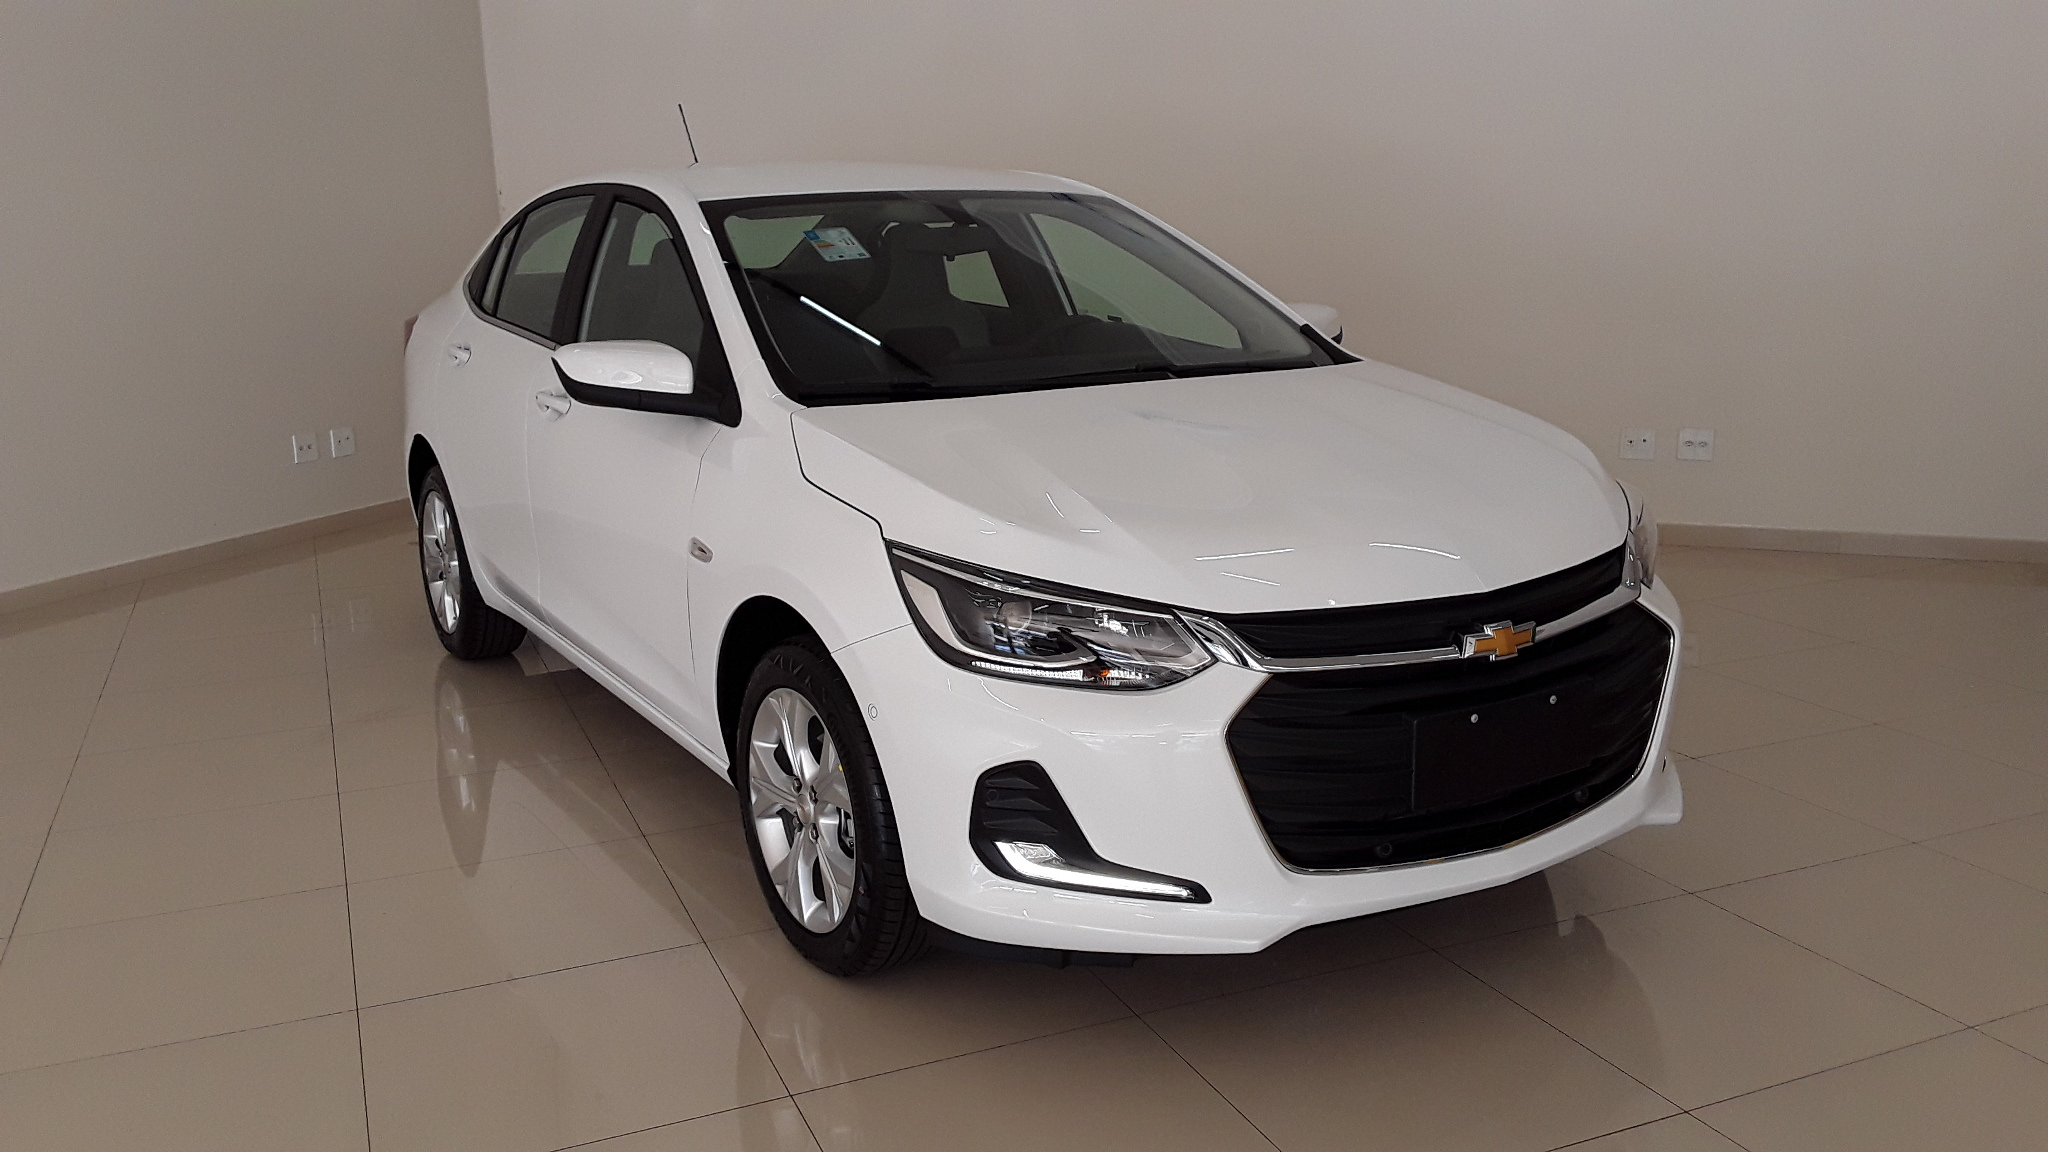 CHEVROLET ONIX PLUS PREMIER 2 1.0 TURBO 2020